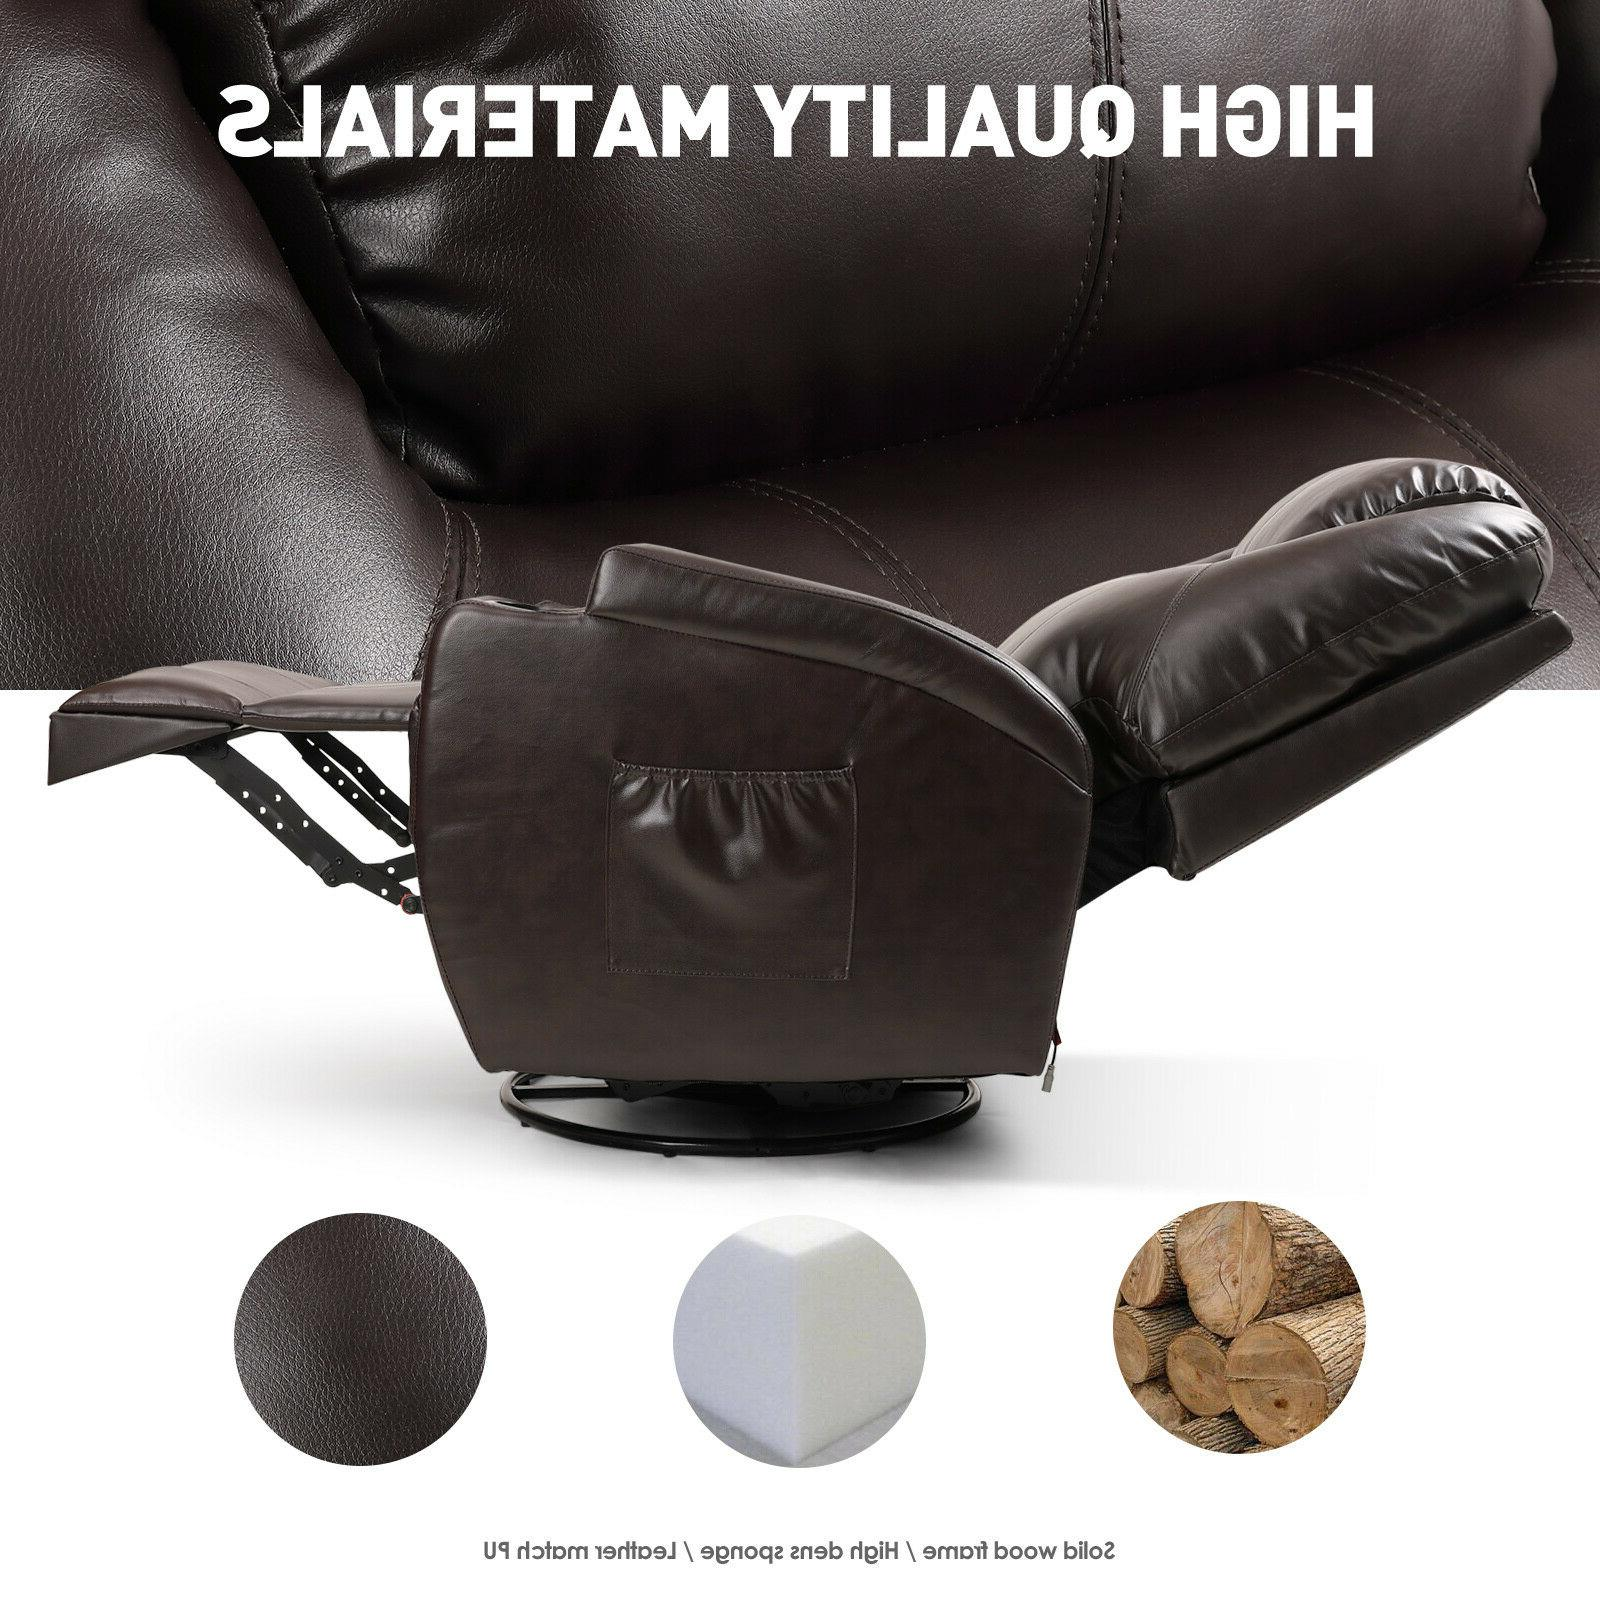 Full Body Electric Massage Chair Leather Lazy Sofa